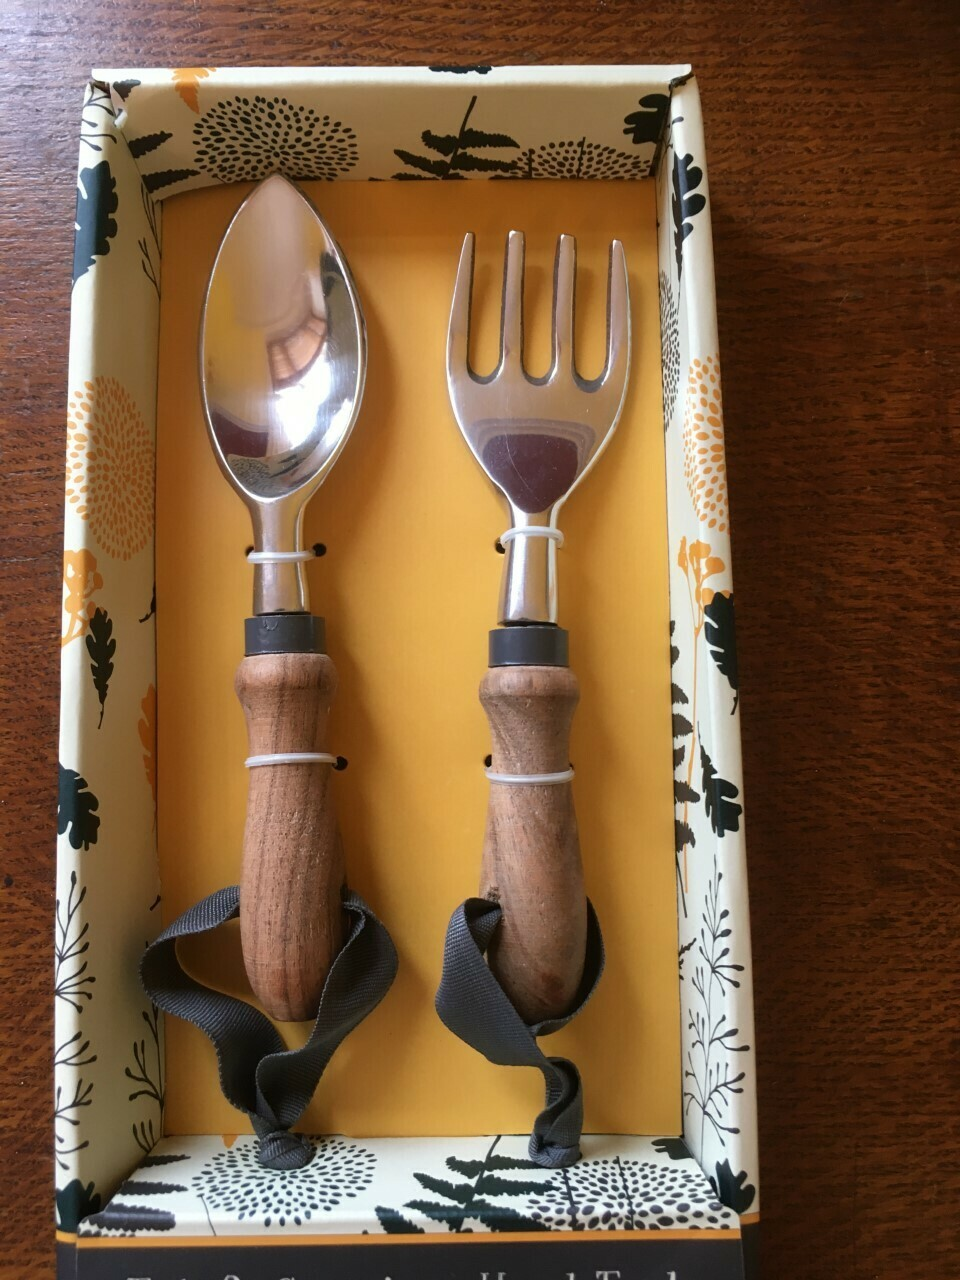 Tub and Container Fork & Trowel, garden tool set.